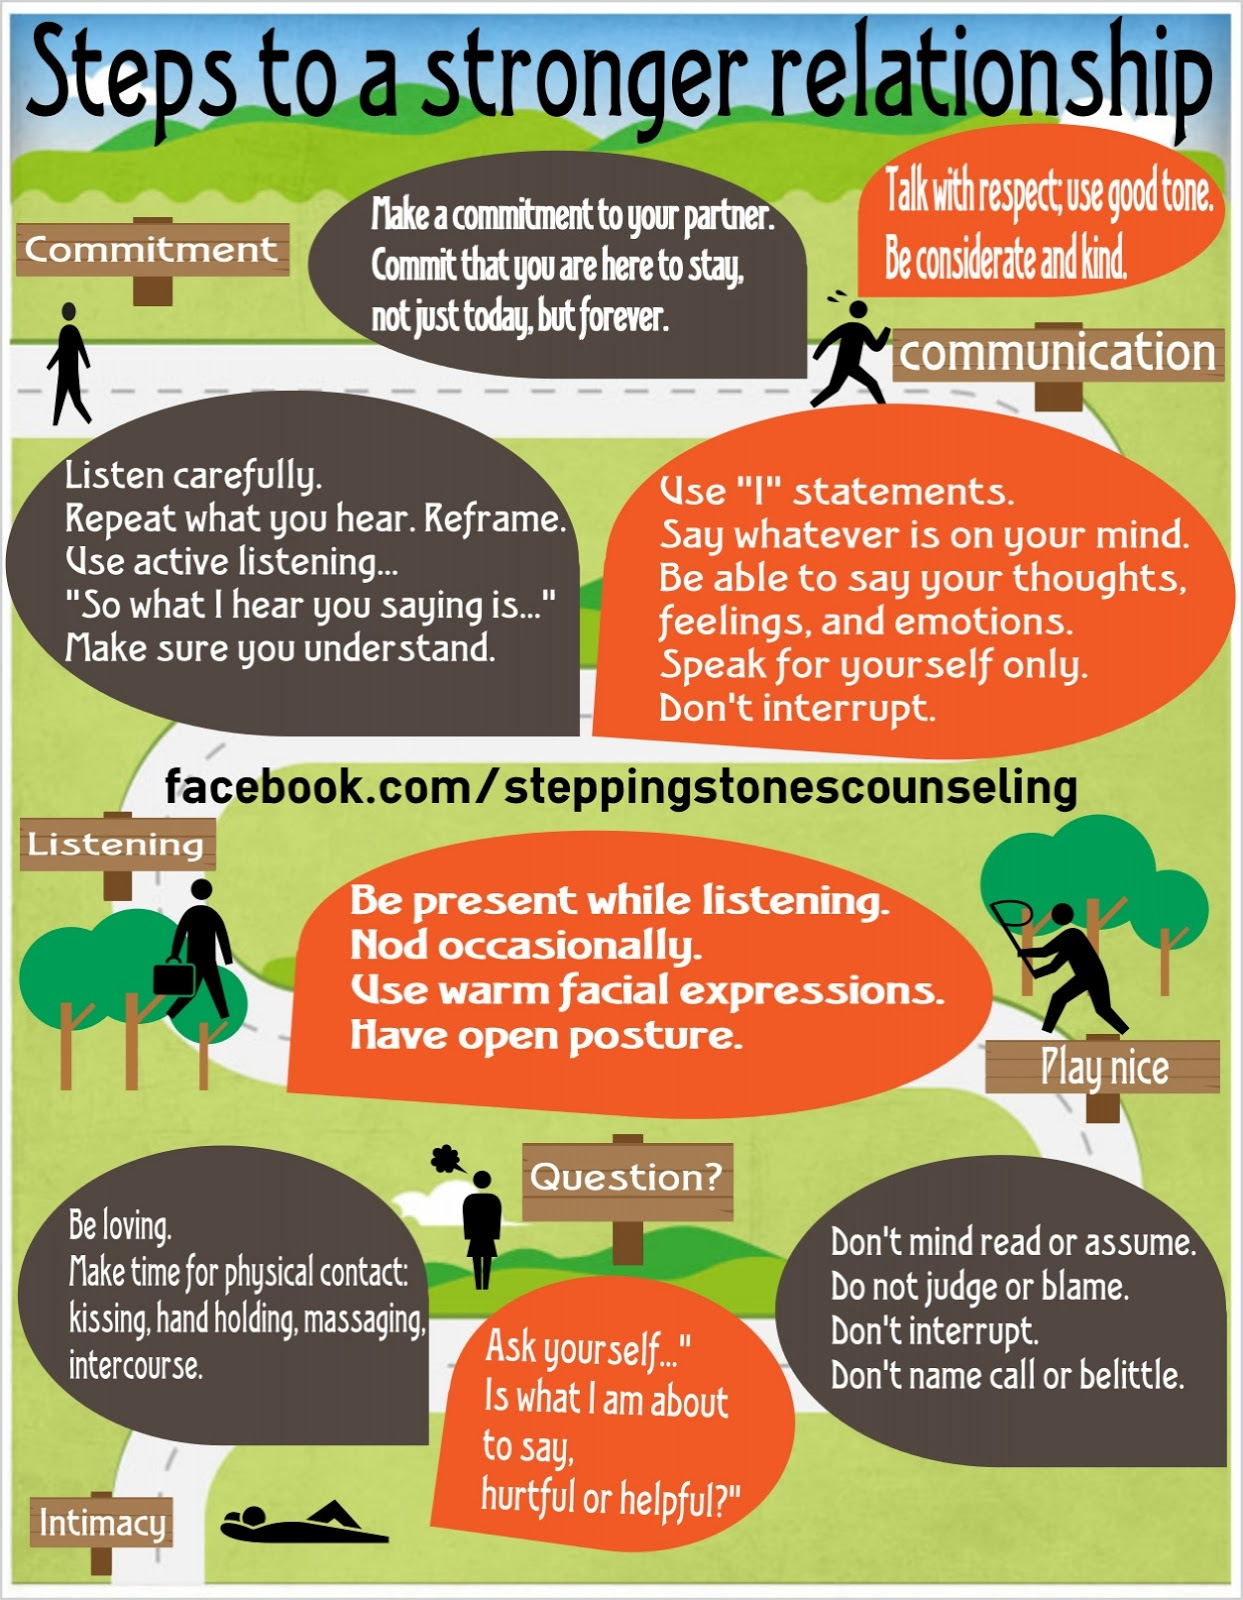 Stepping Stones Professional Counseling Steps To A